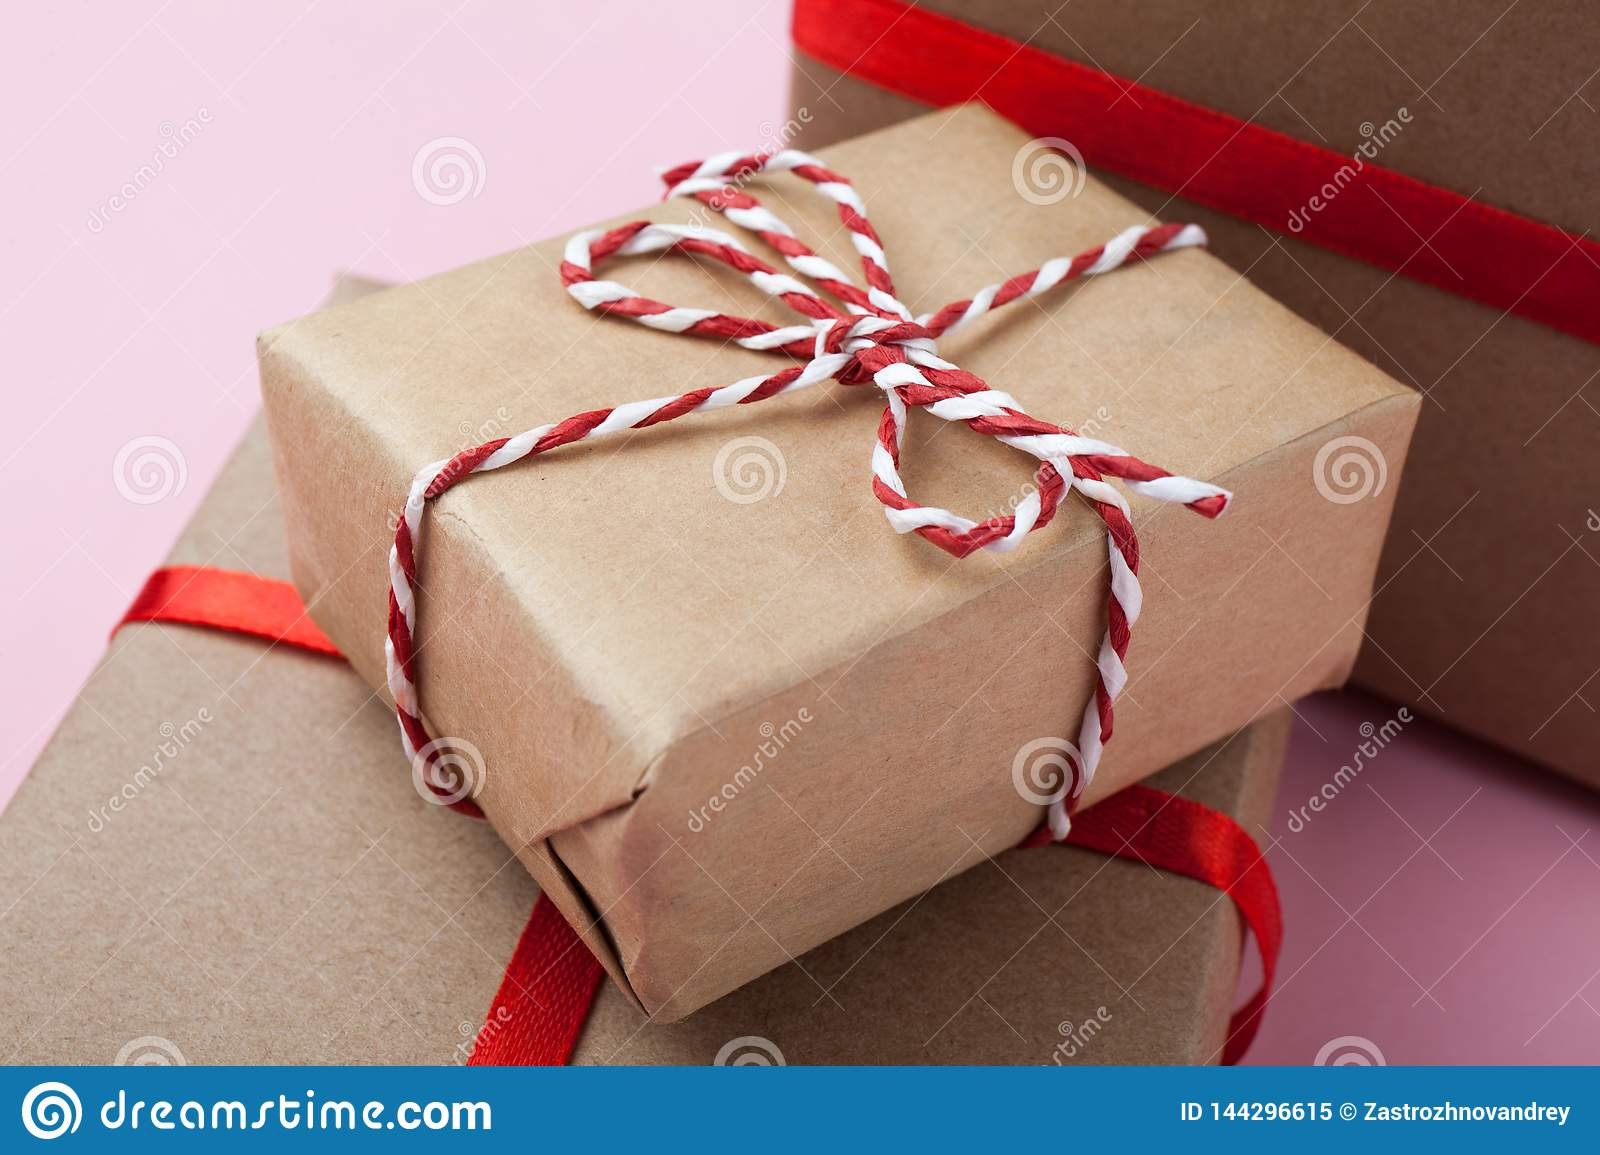 Small Handmade Gift Boxes With A Red Ribbon On A Pink Background